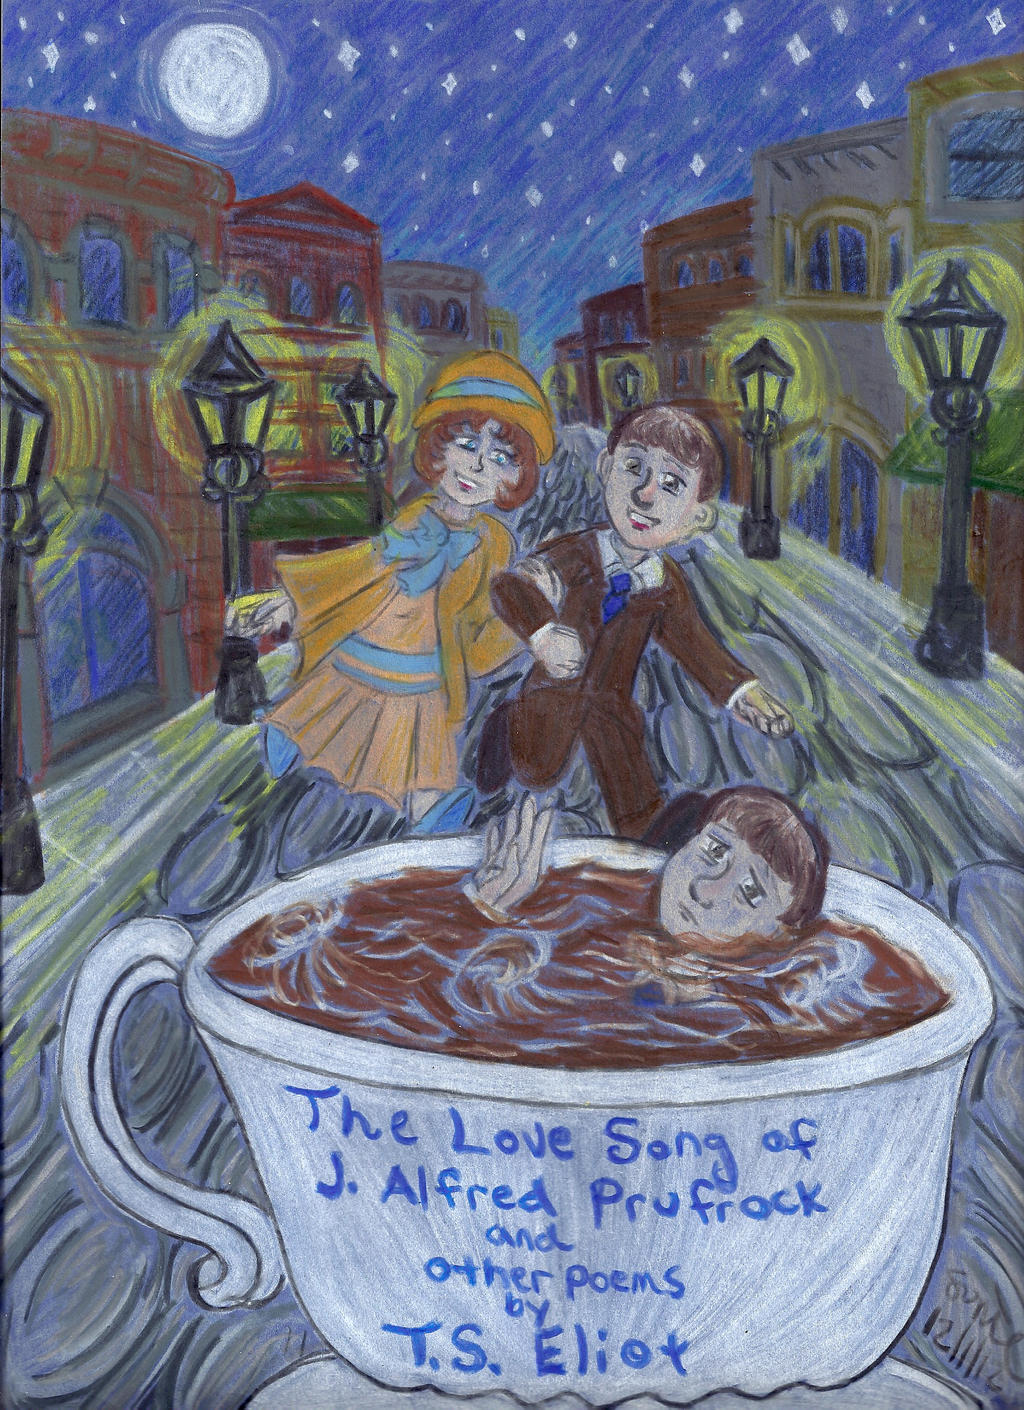 the love song of j alfred prufrock essay hurry this offer ends the love song of j alfred prufrock homework essay 180 x 233 jpeg 13kb chibisunnie com